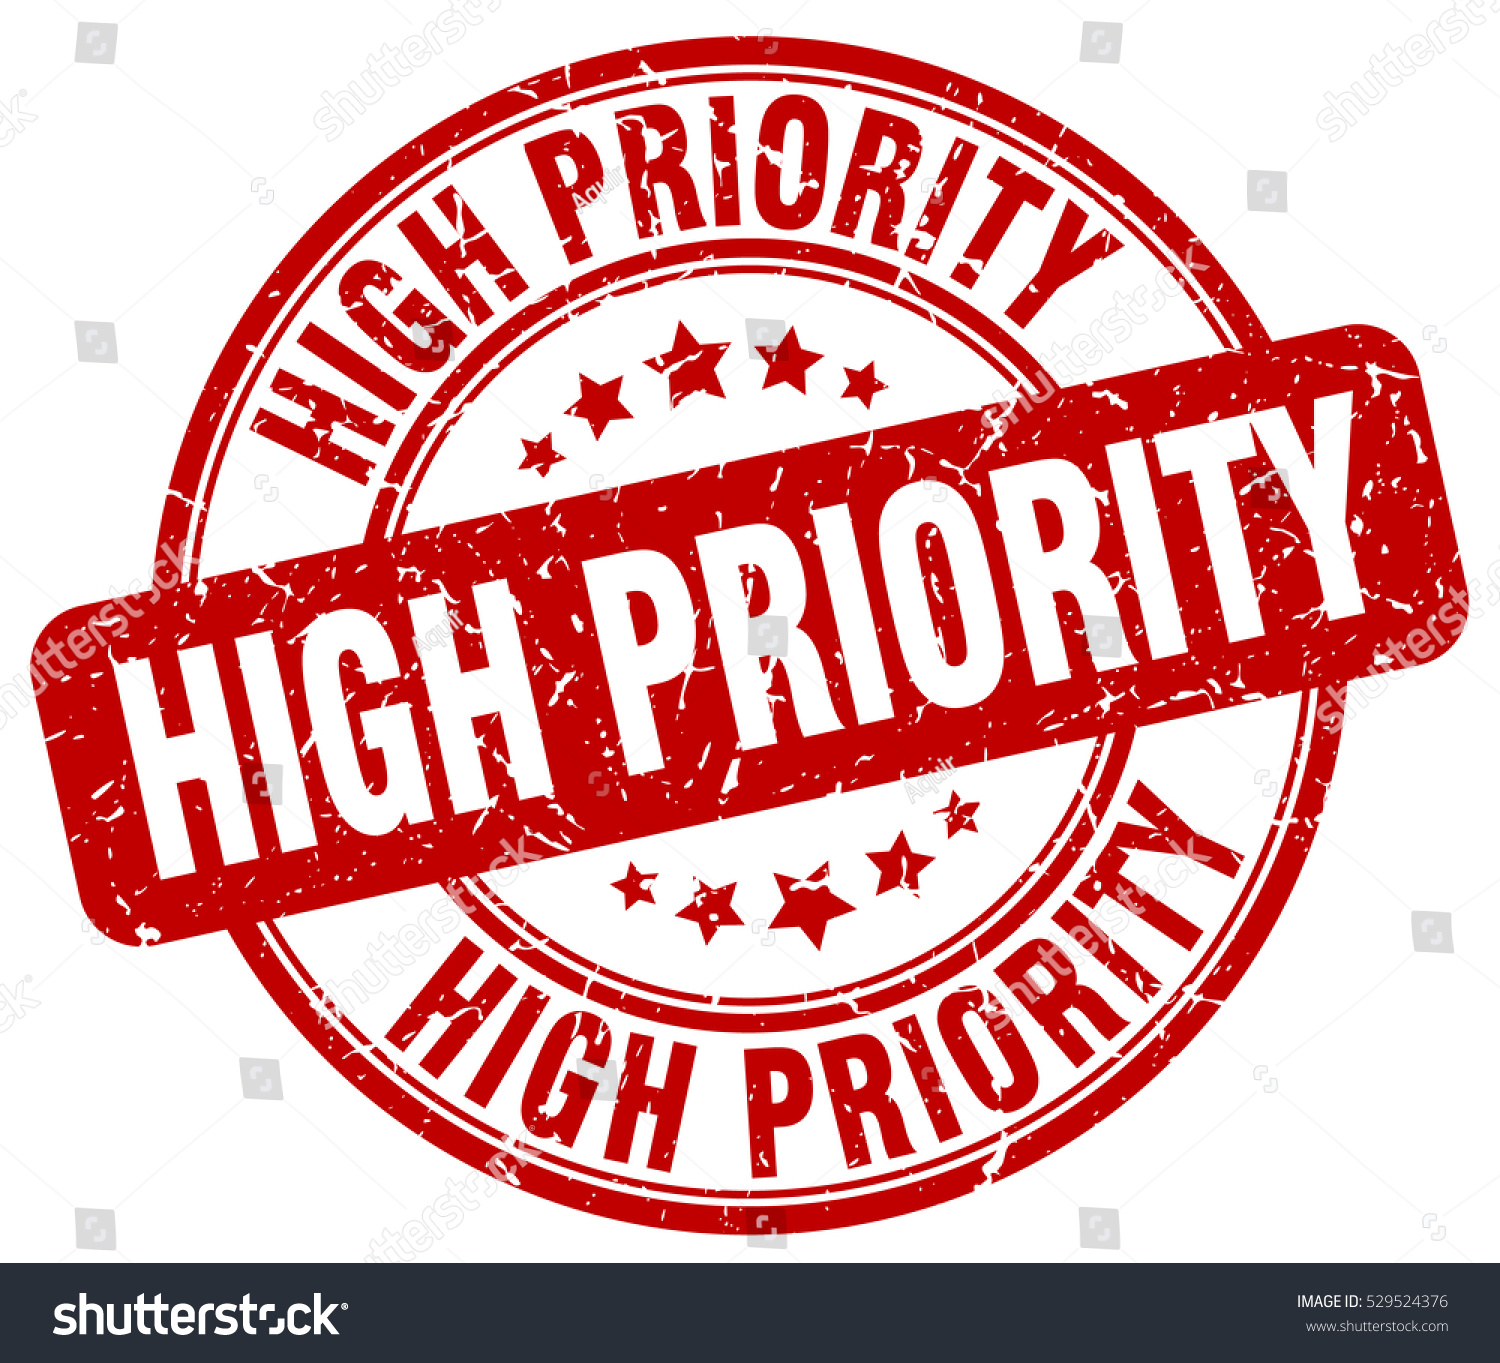 High Priority. Stamp. Red Round Grunge Vintage High Priority Sign Stock Vector Illustration 529524376 : Shutterstock